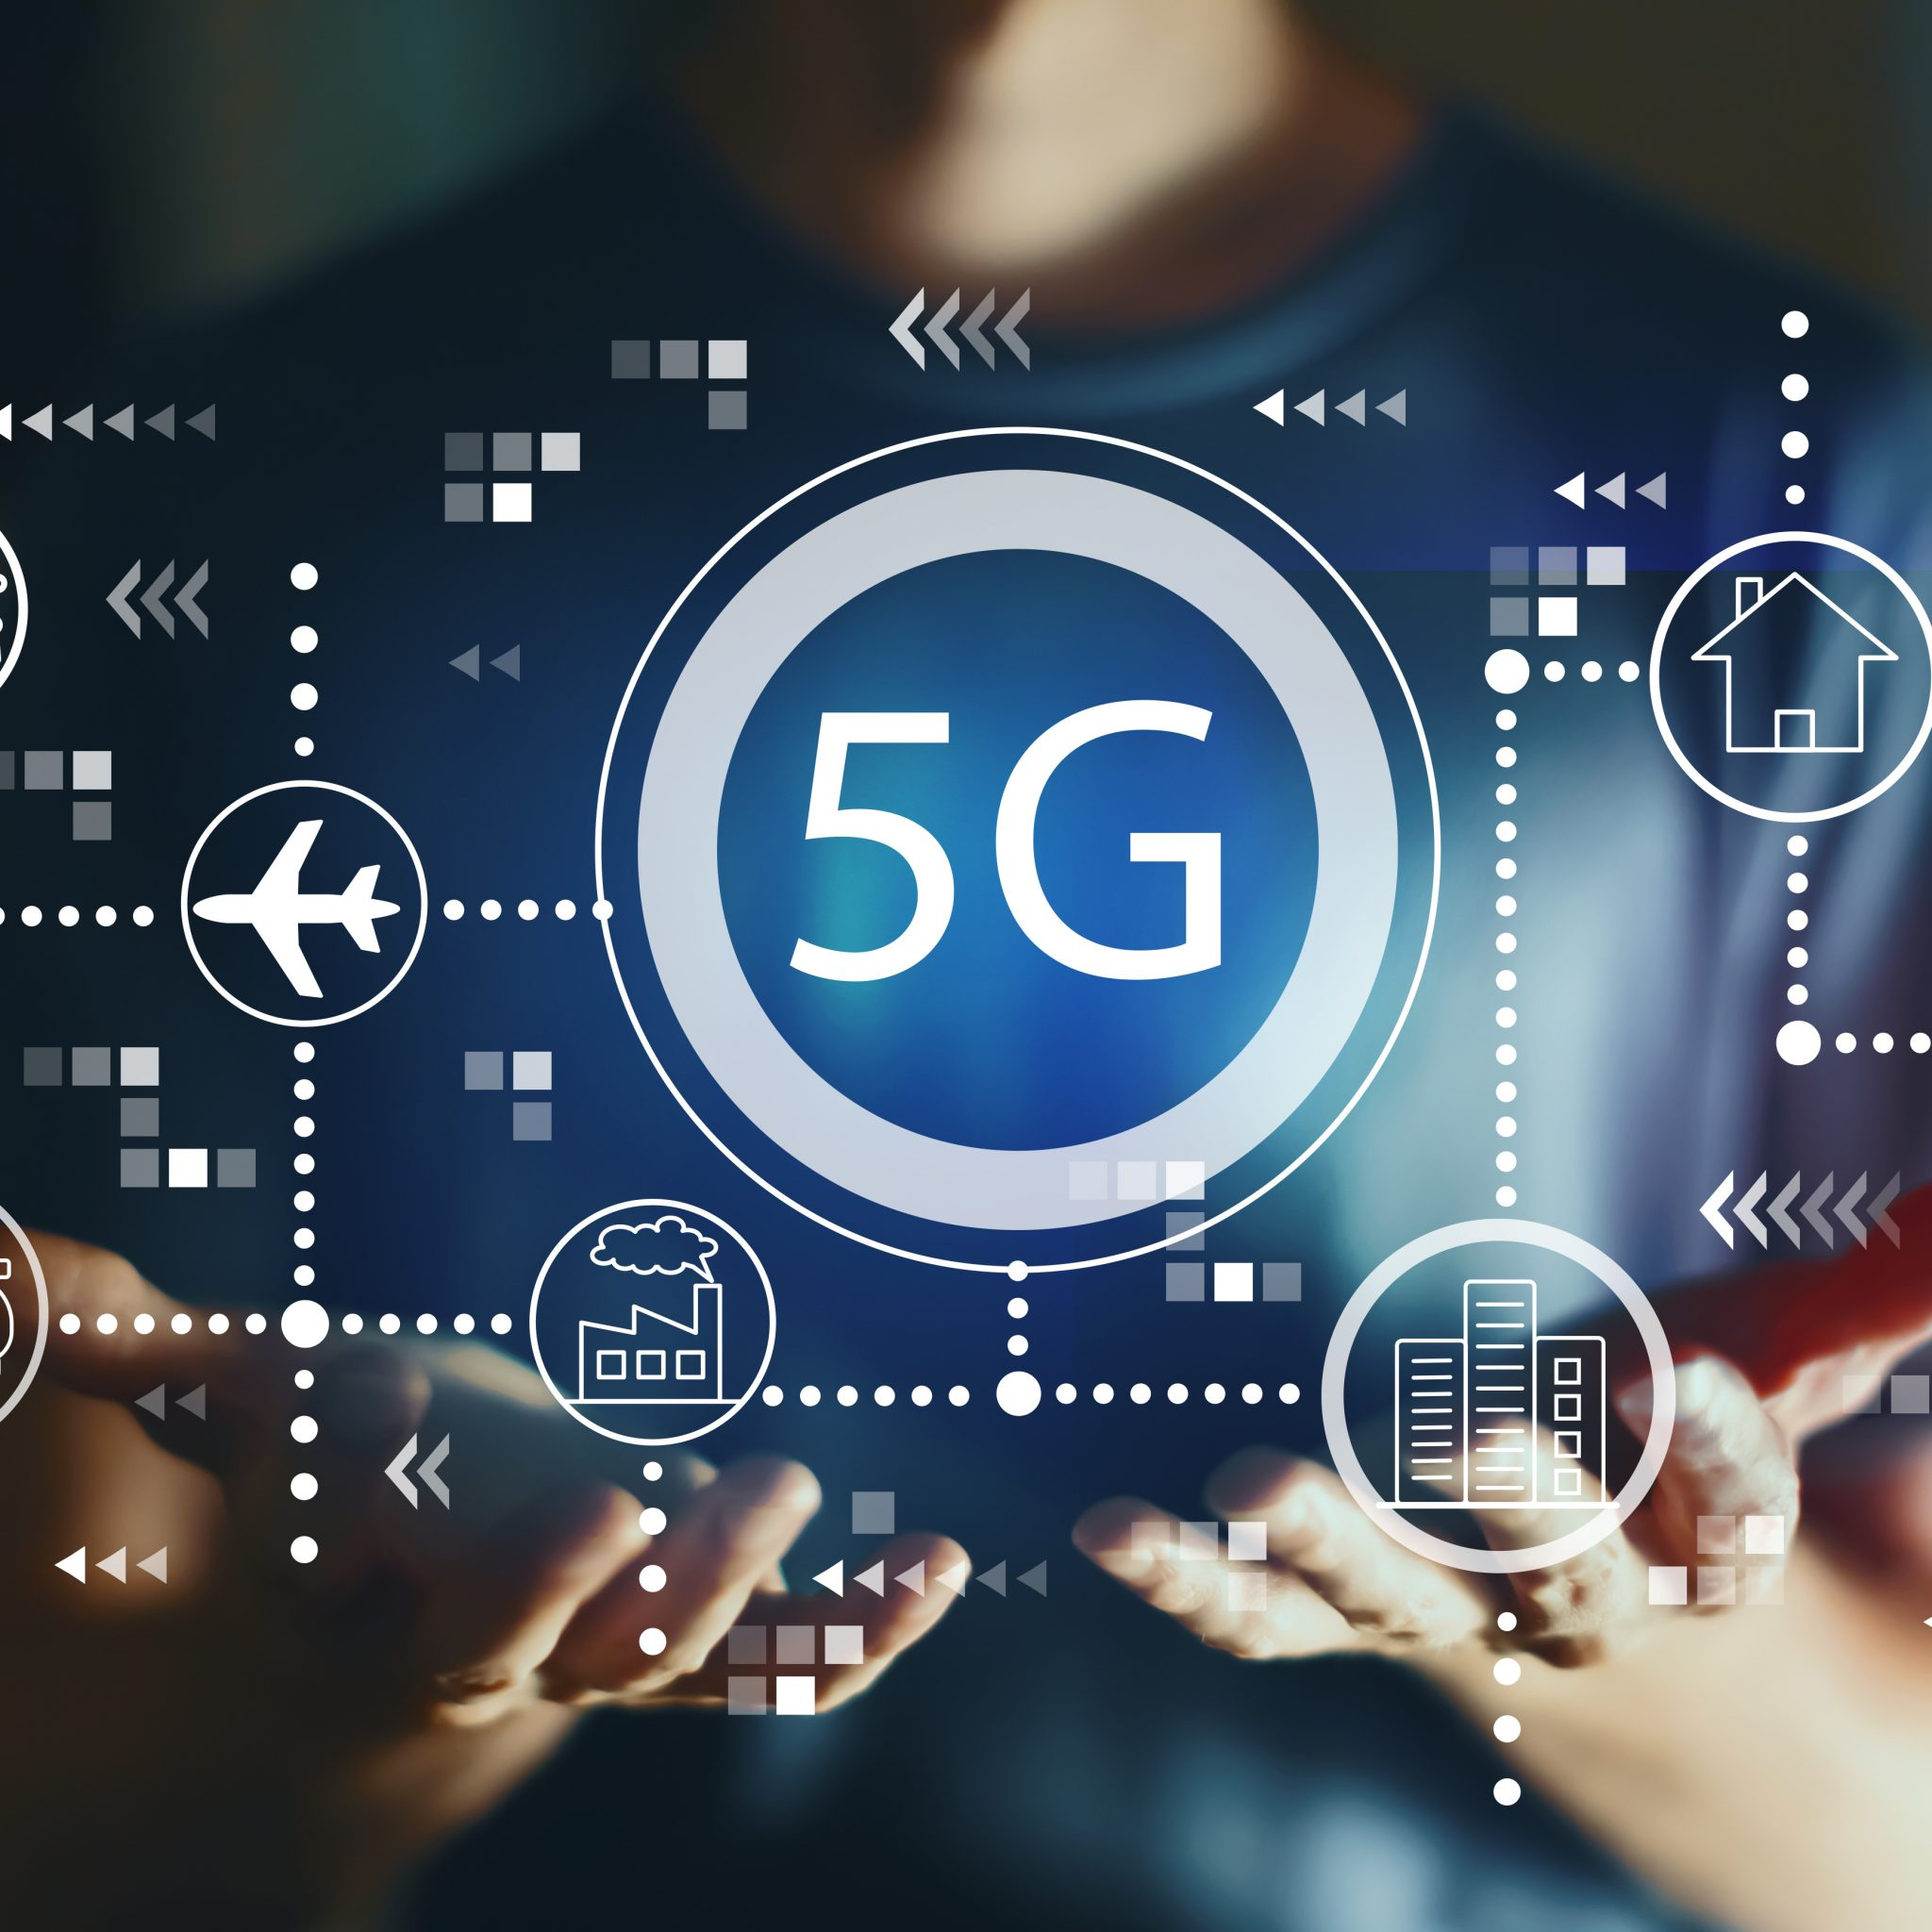 Realme To Boost 5G Connectivity By Building 7 R&D Centers To Develop 5G Tech